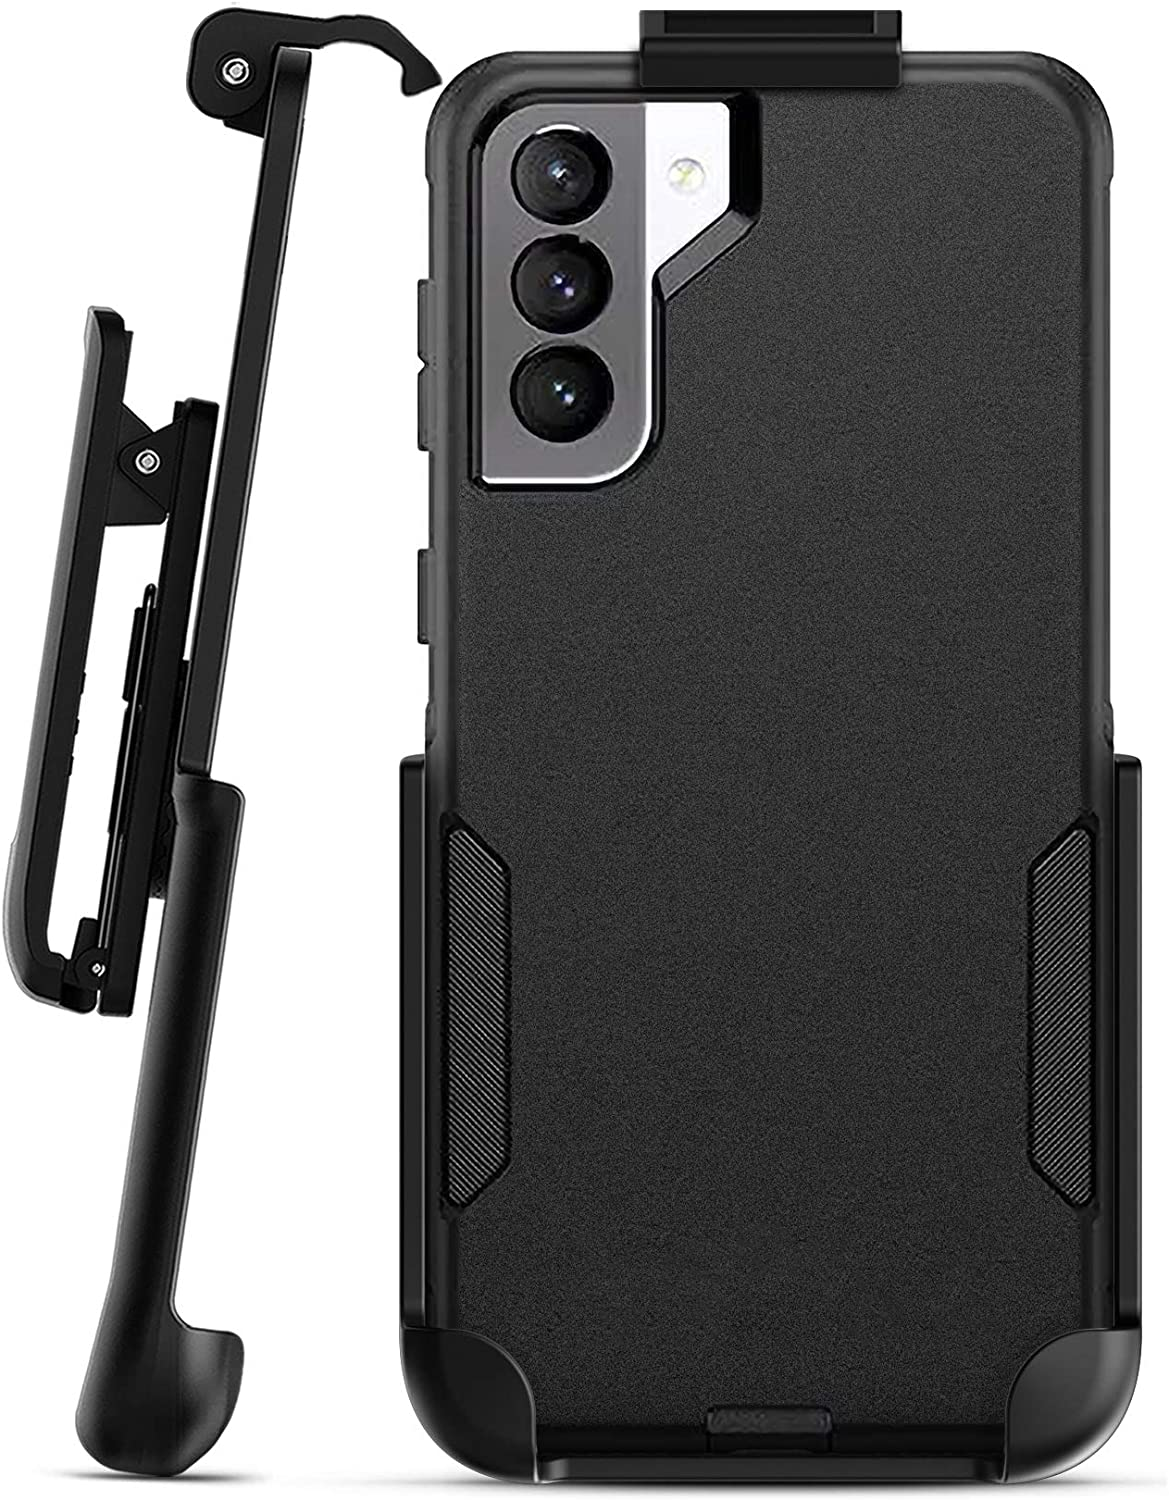 Encased Belt Clip Holster for Otterbox Commuter Case - Samsung Galaxy S21 (case not Included)